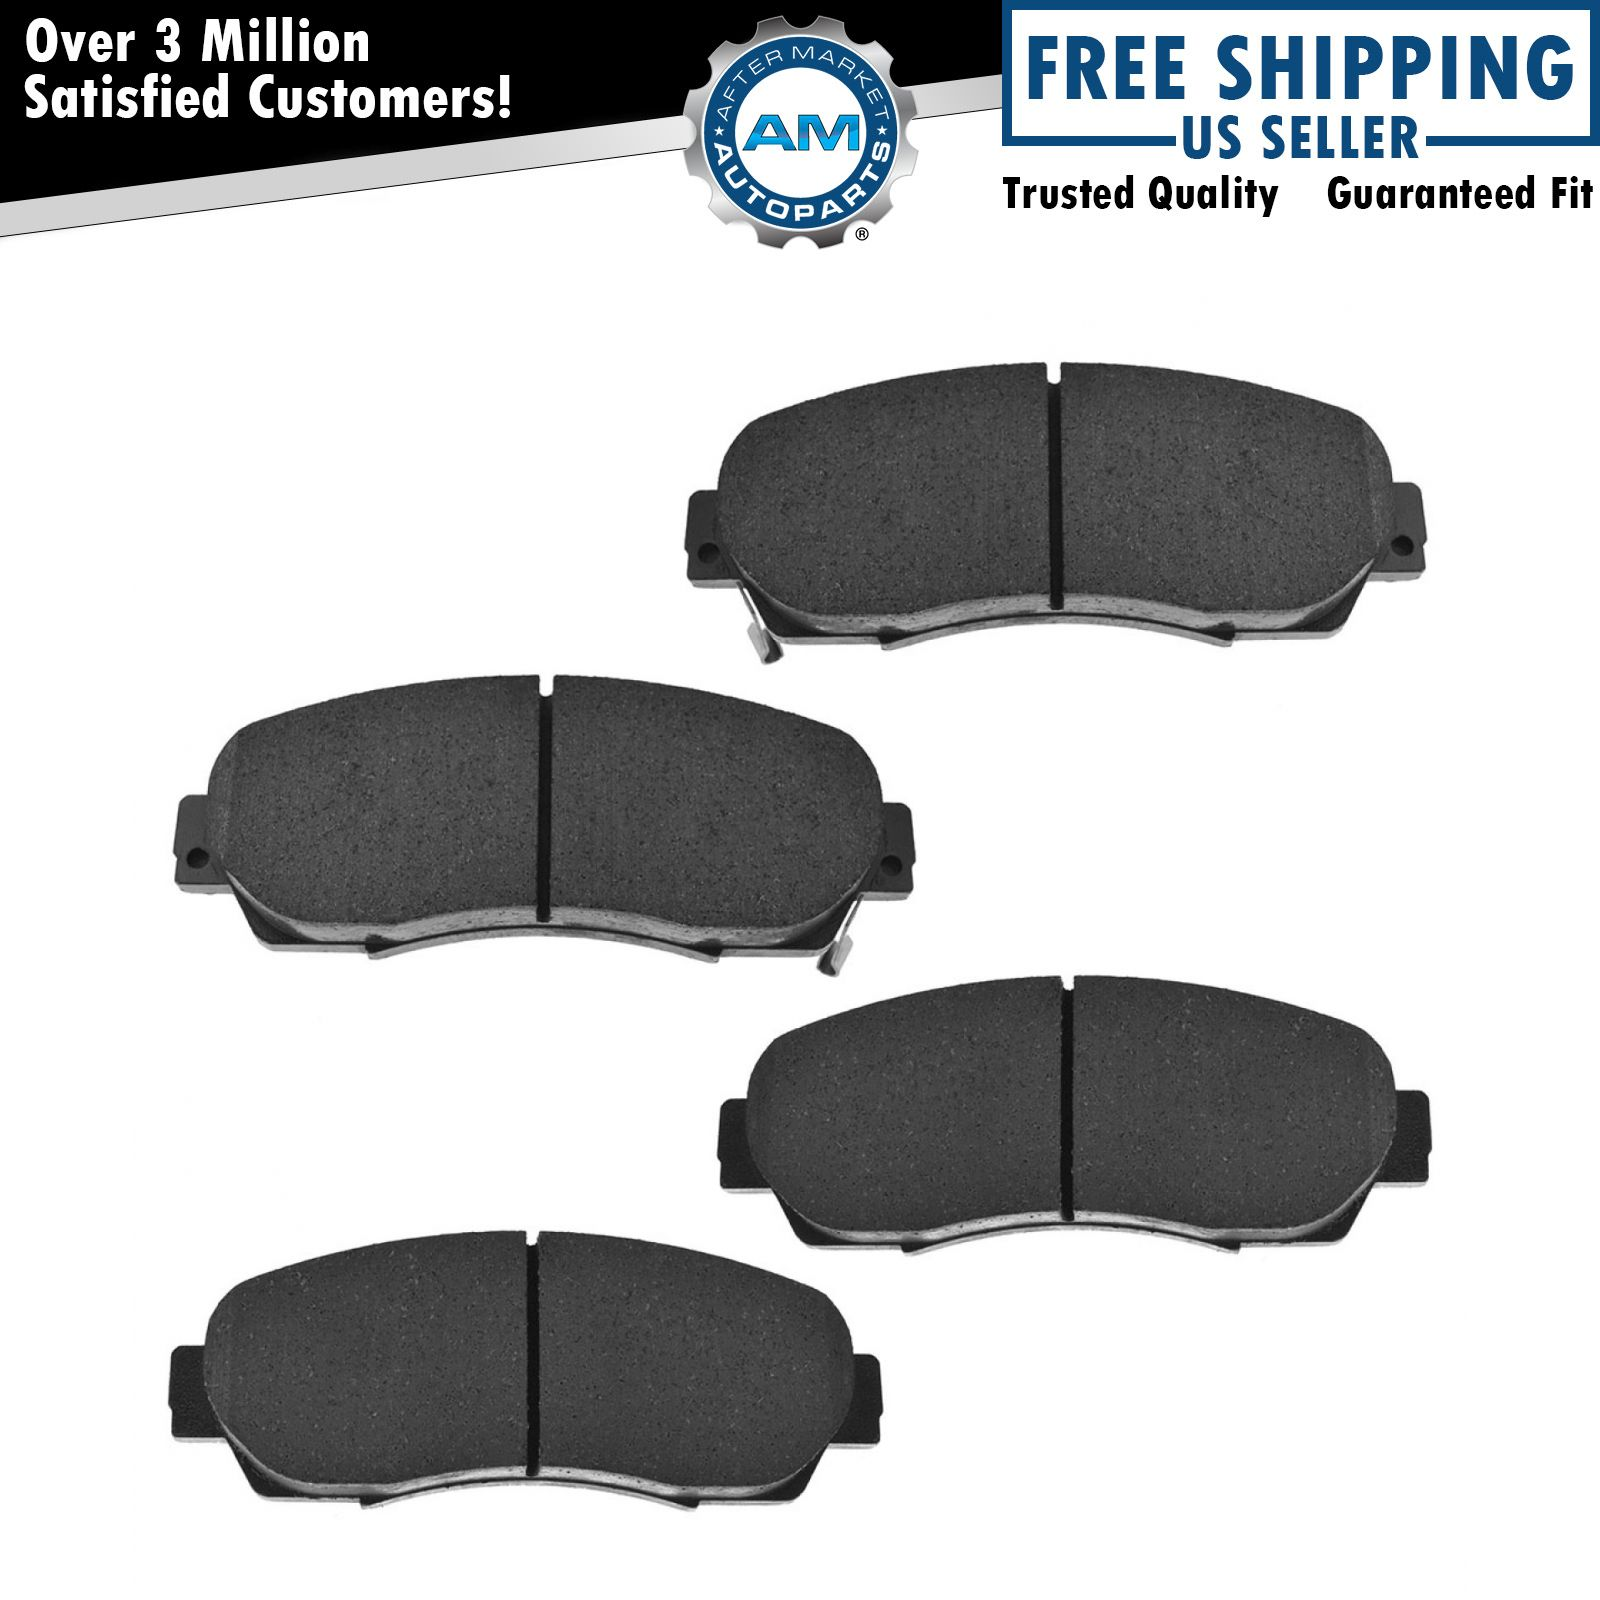 Front Ceramic Brake Pad Kit for Acura RDX Honda Crosstour CR-V Odyssey